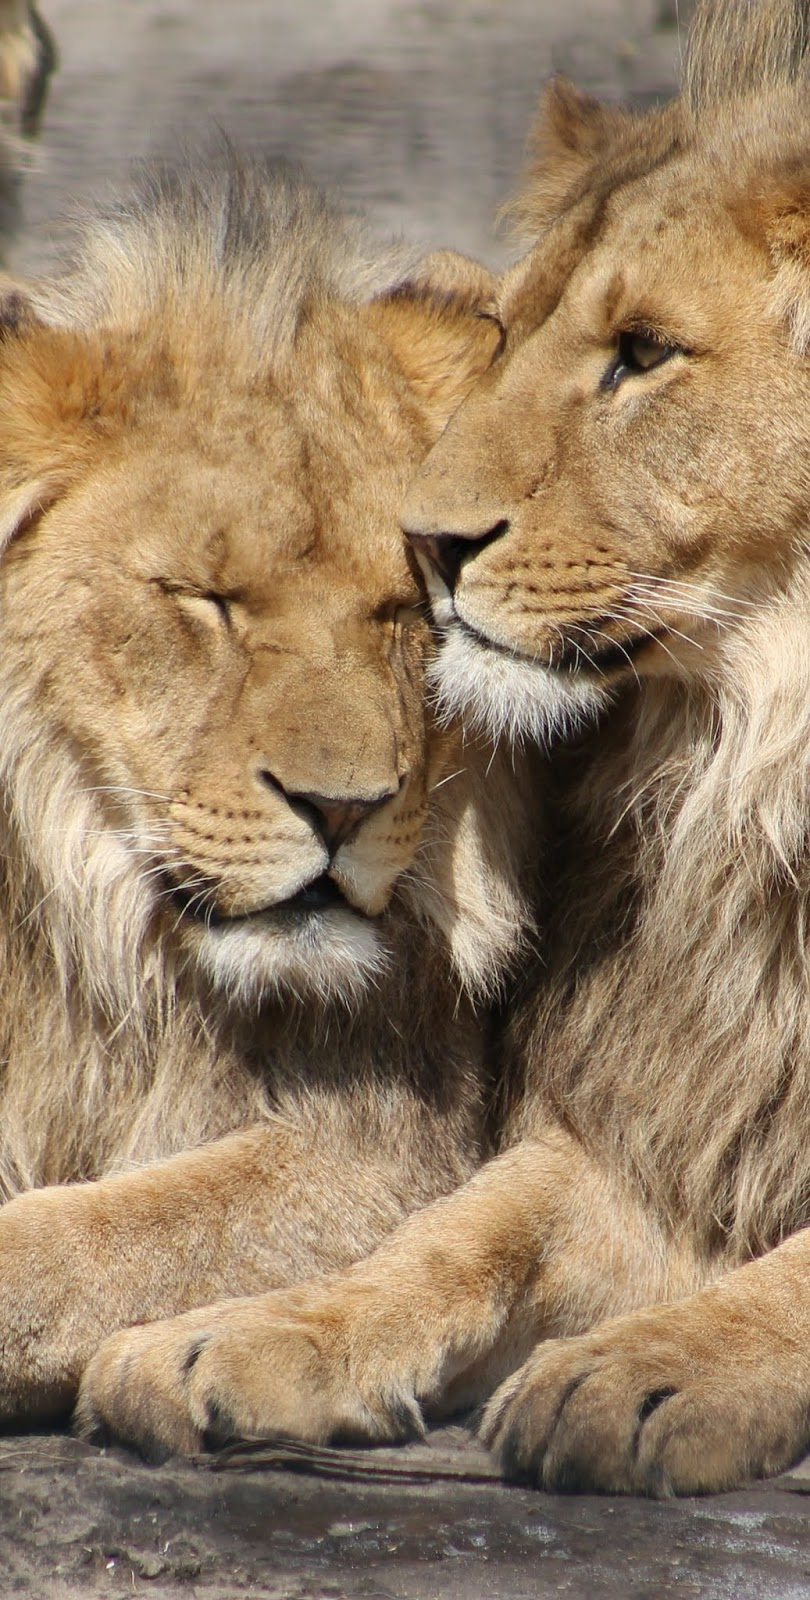 Picture of lions cuddling.